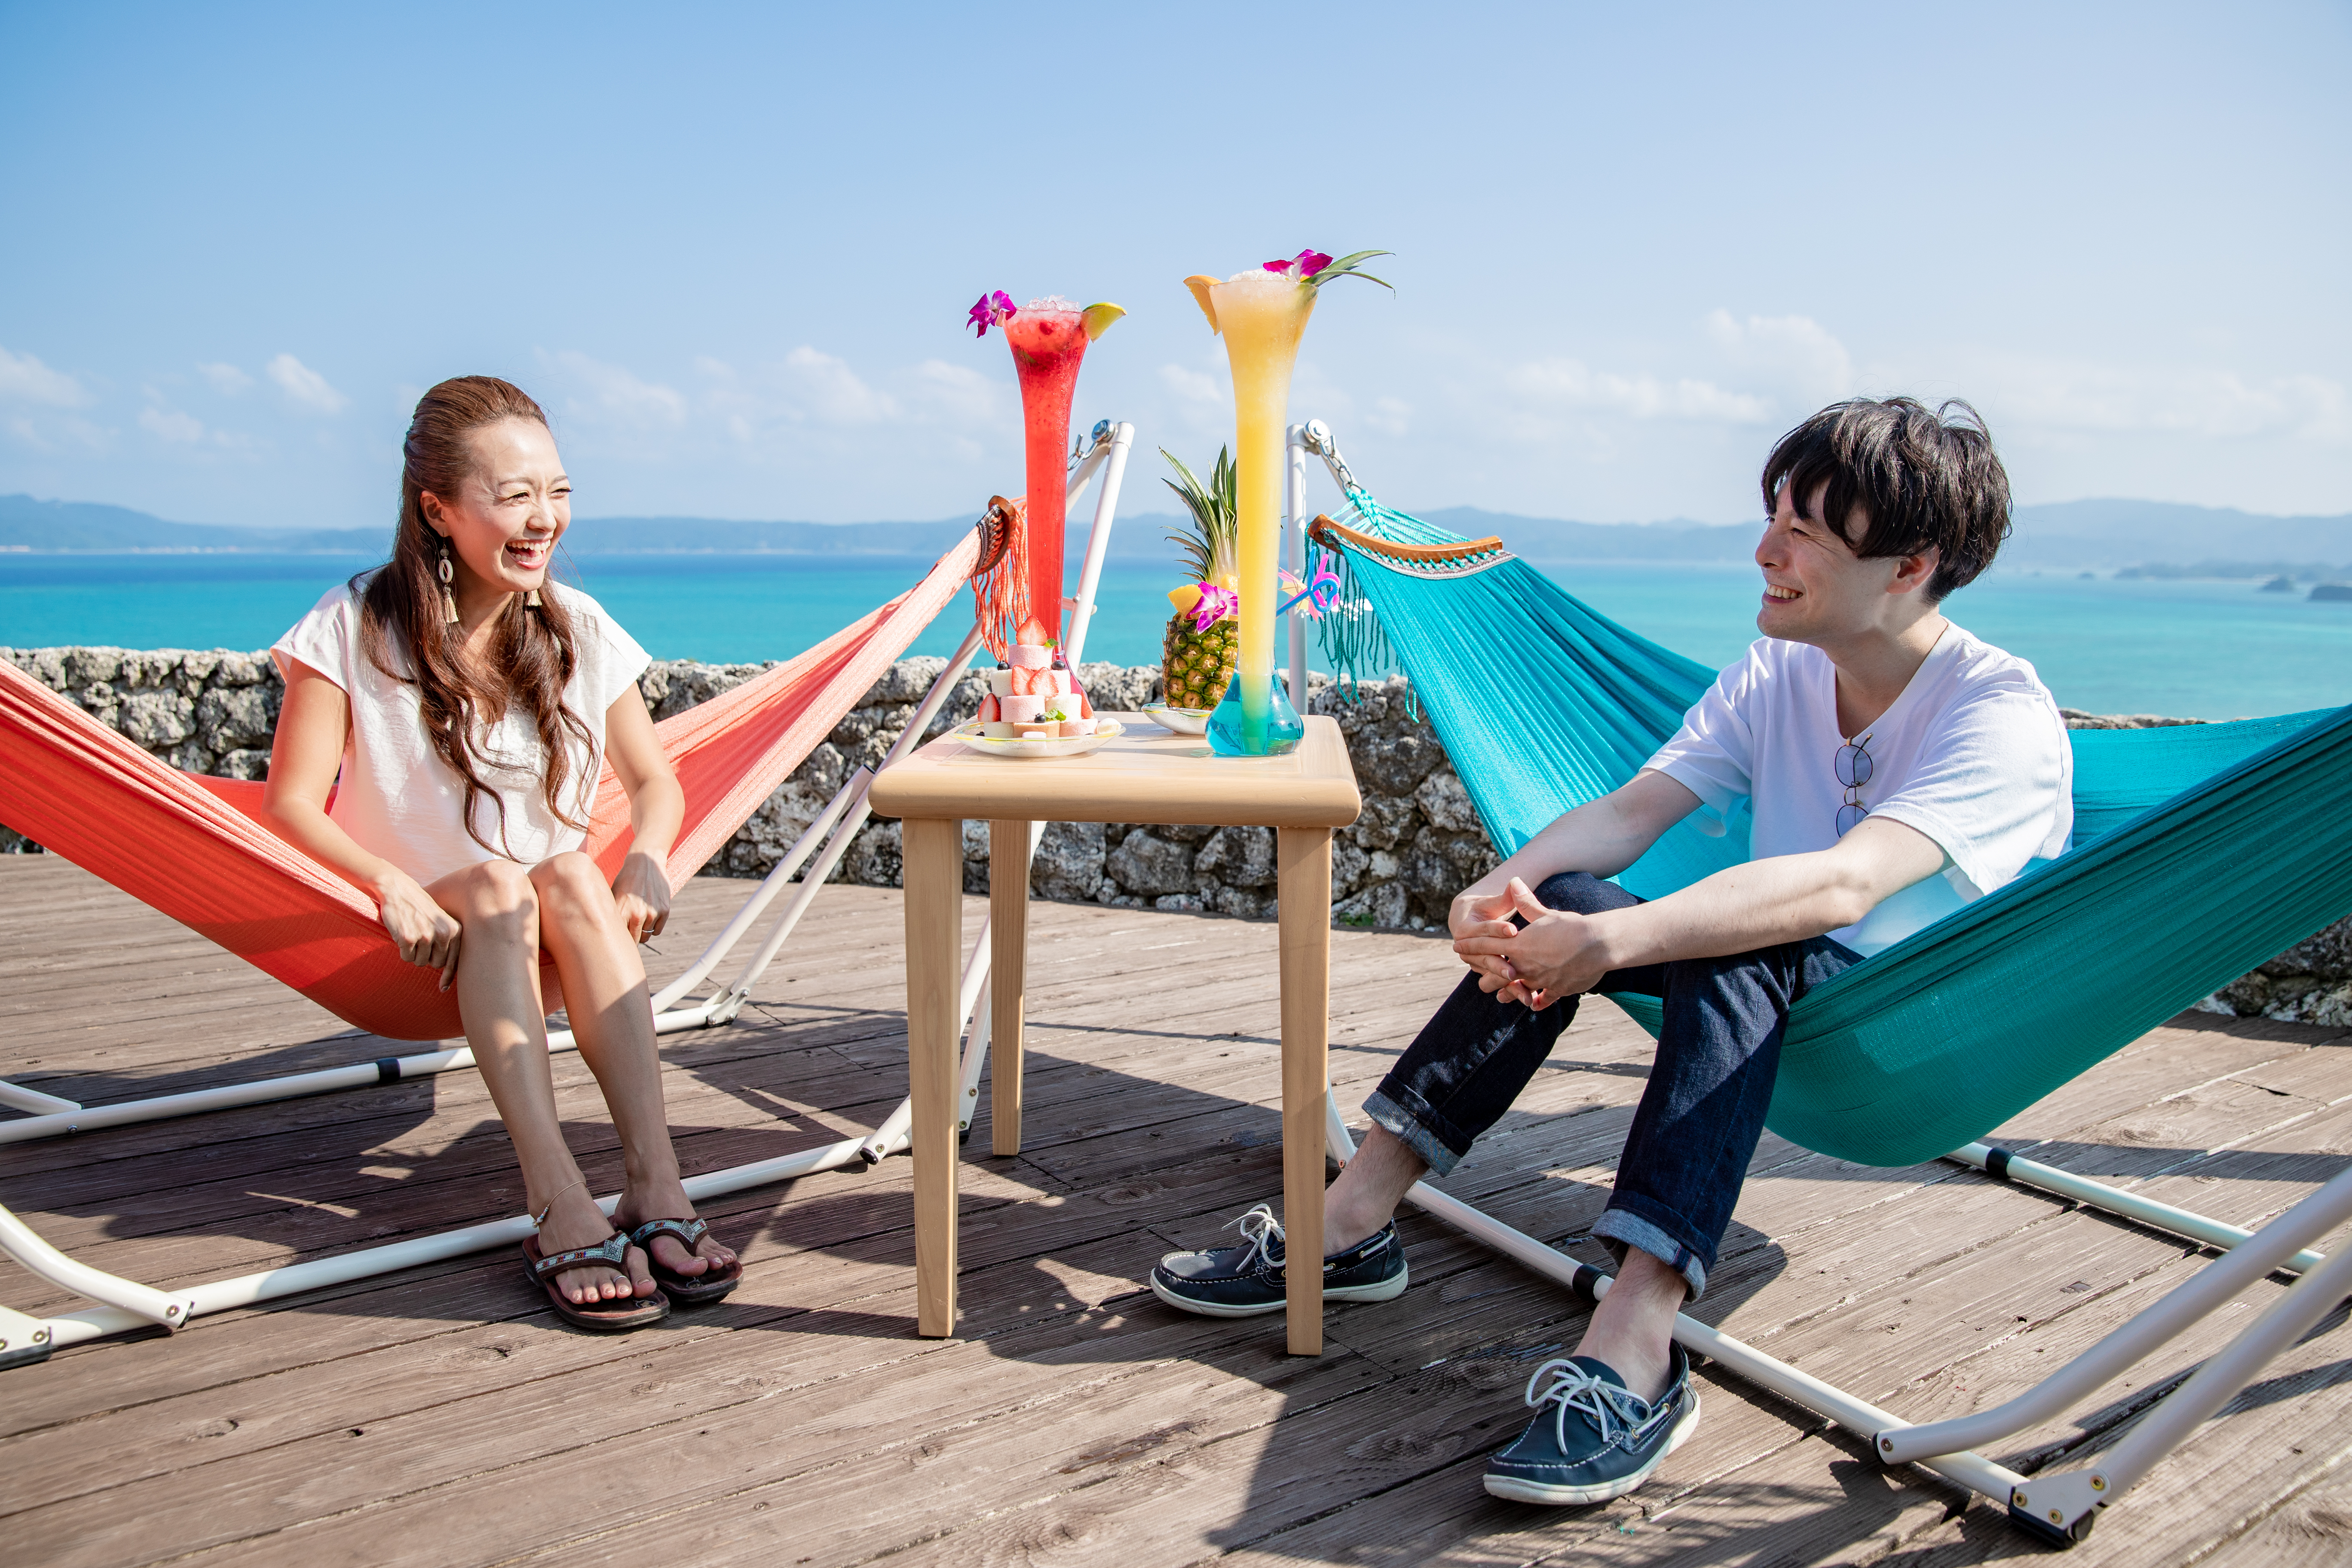 Limited only between May to Novemeber, customers can gaze at the spectacular view from the terrace hammock café or enjoy BBQ with ingredients from northern Yanbaru area.